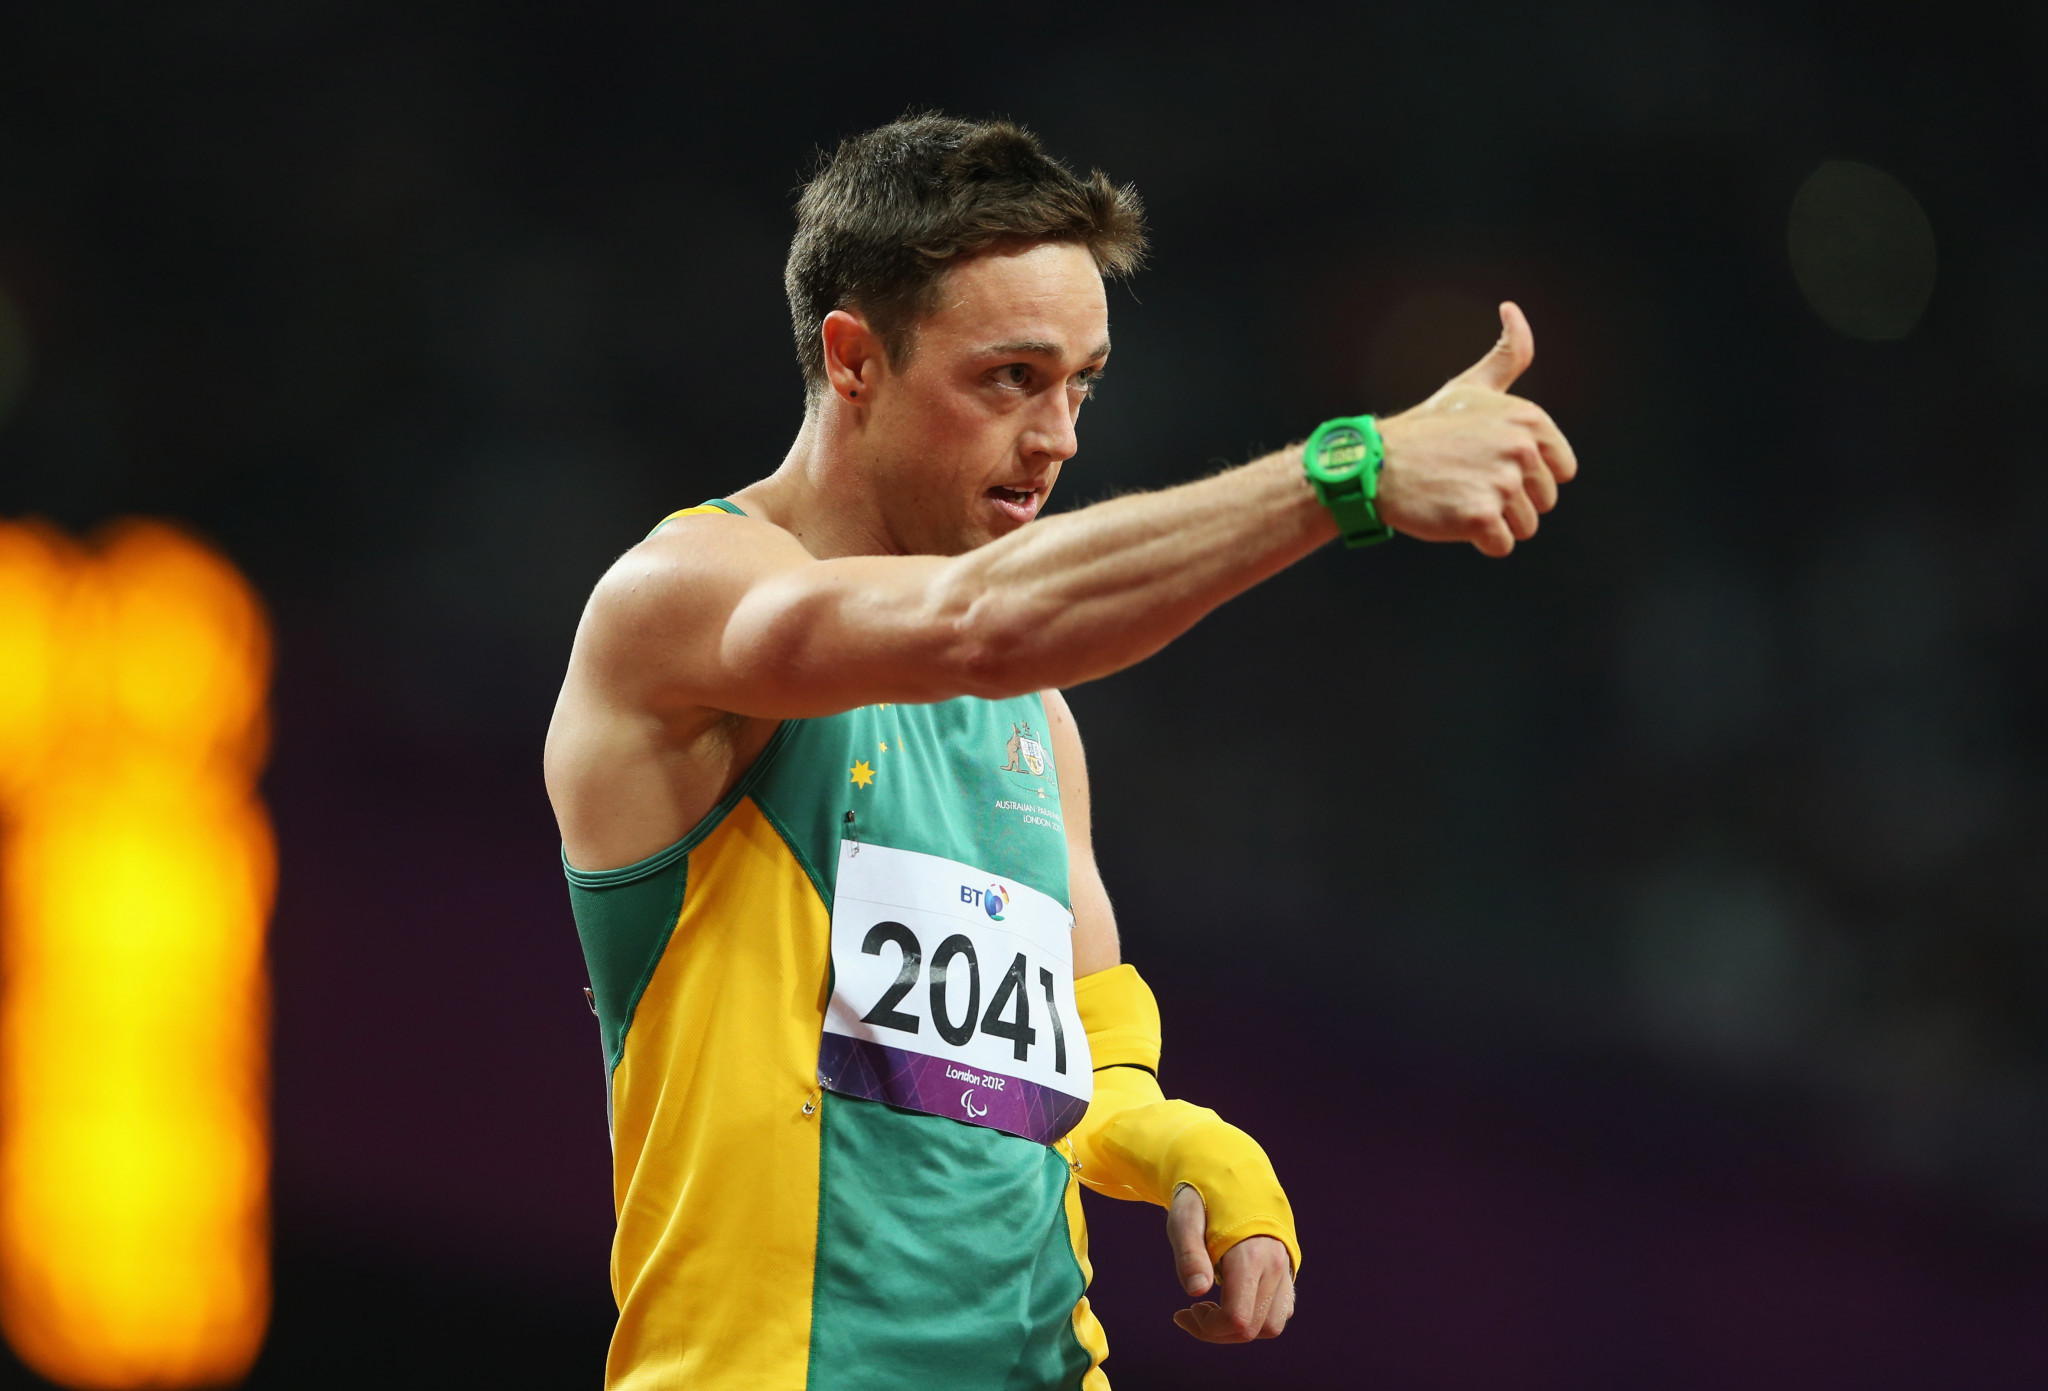 Simon Patmore claimed gold at the London 2012 Paralympics ©Getty Images